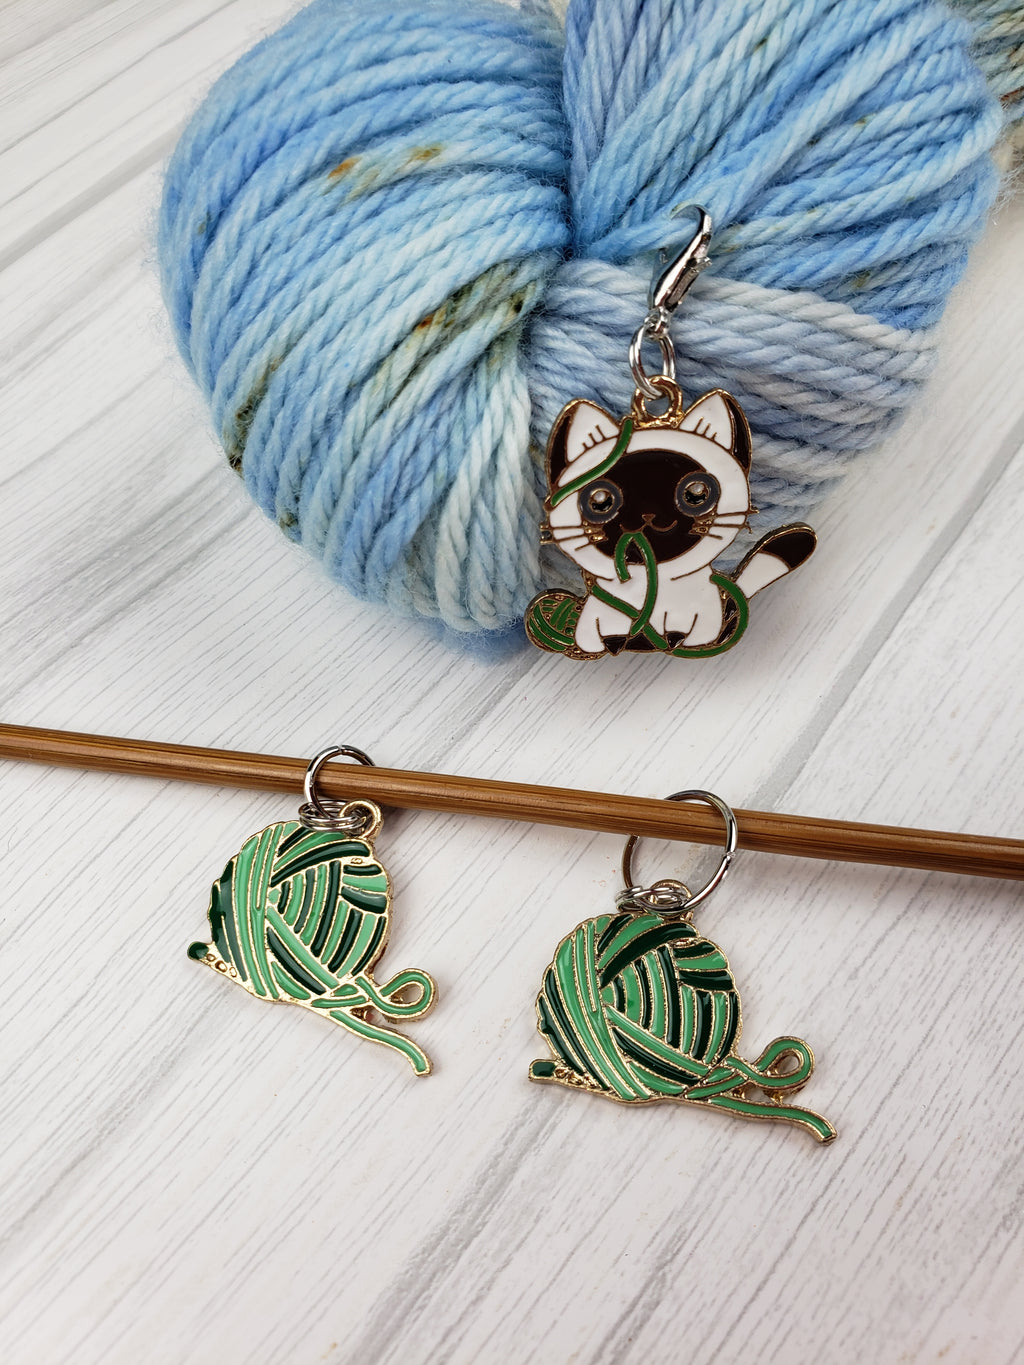 Yarn and Kitty Charms, Set of 2 - Spindle warps yarns